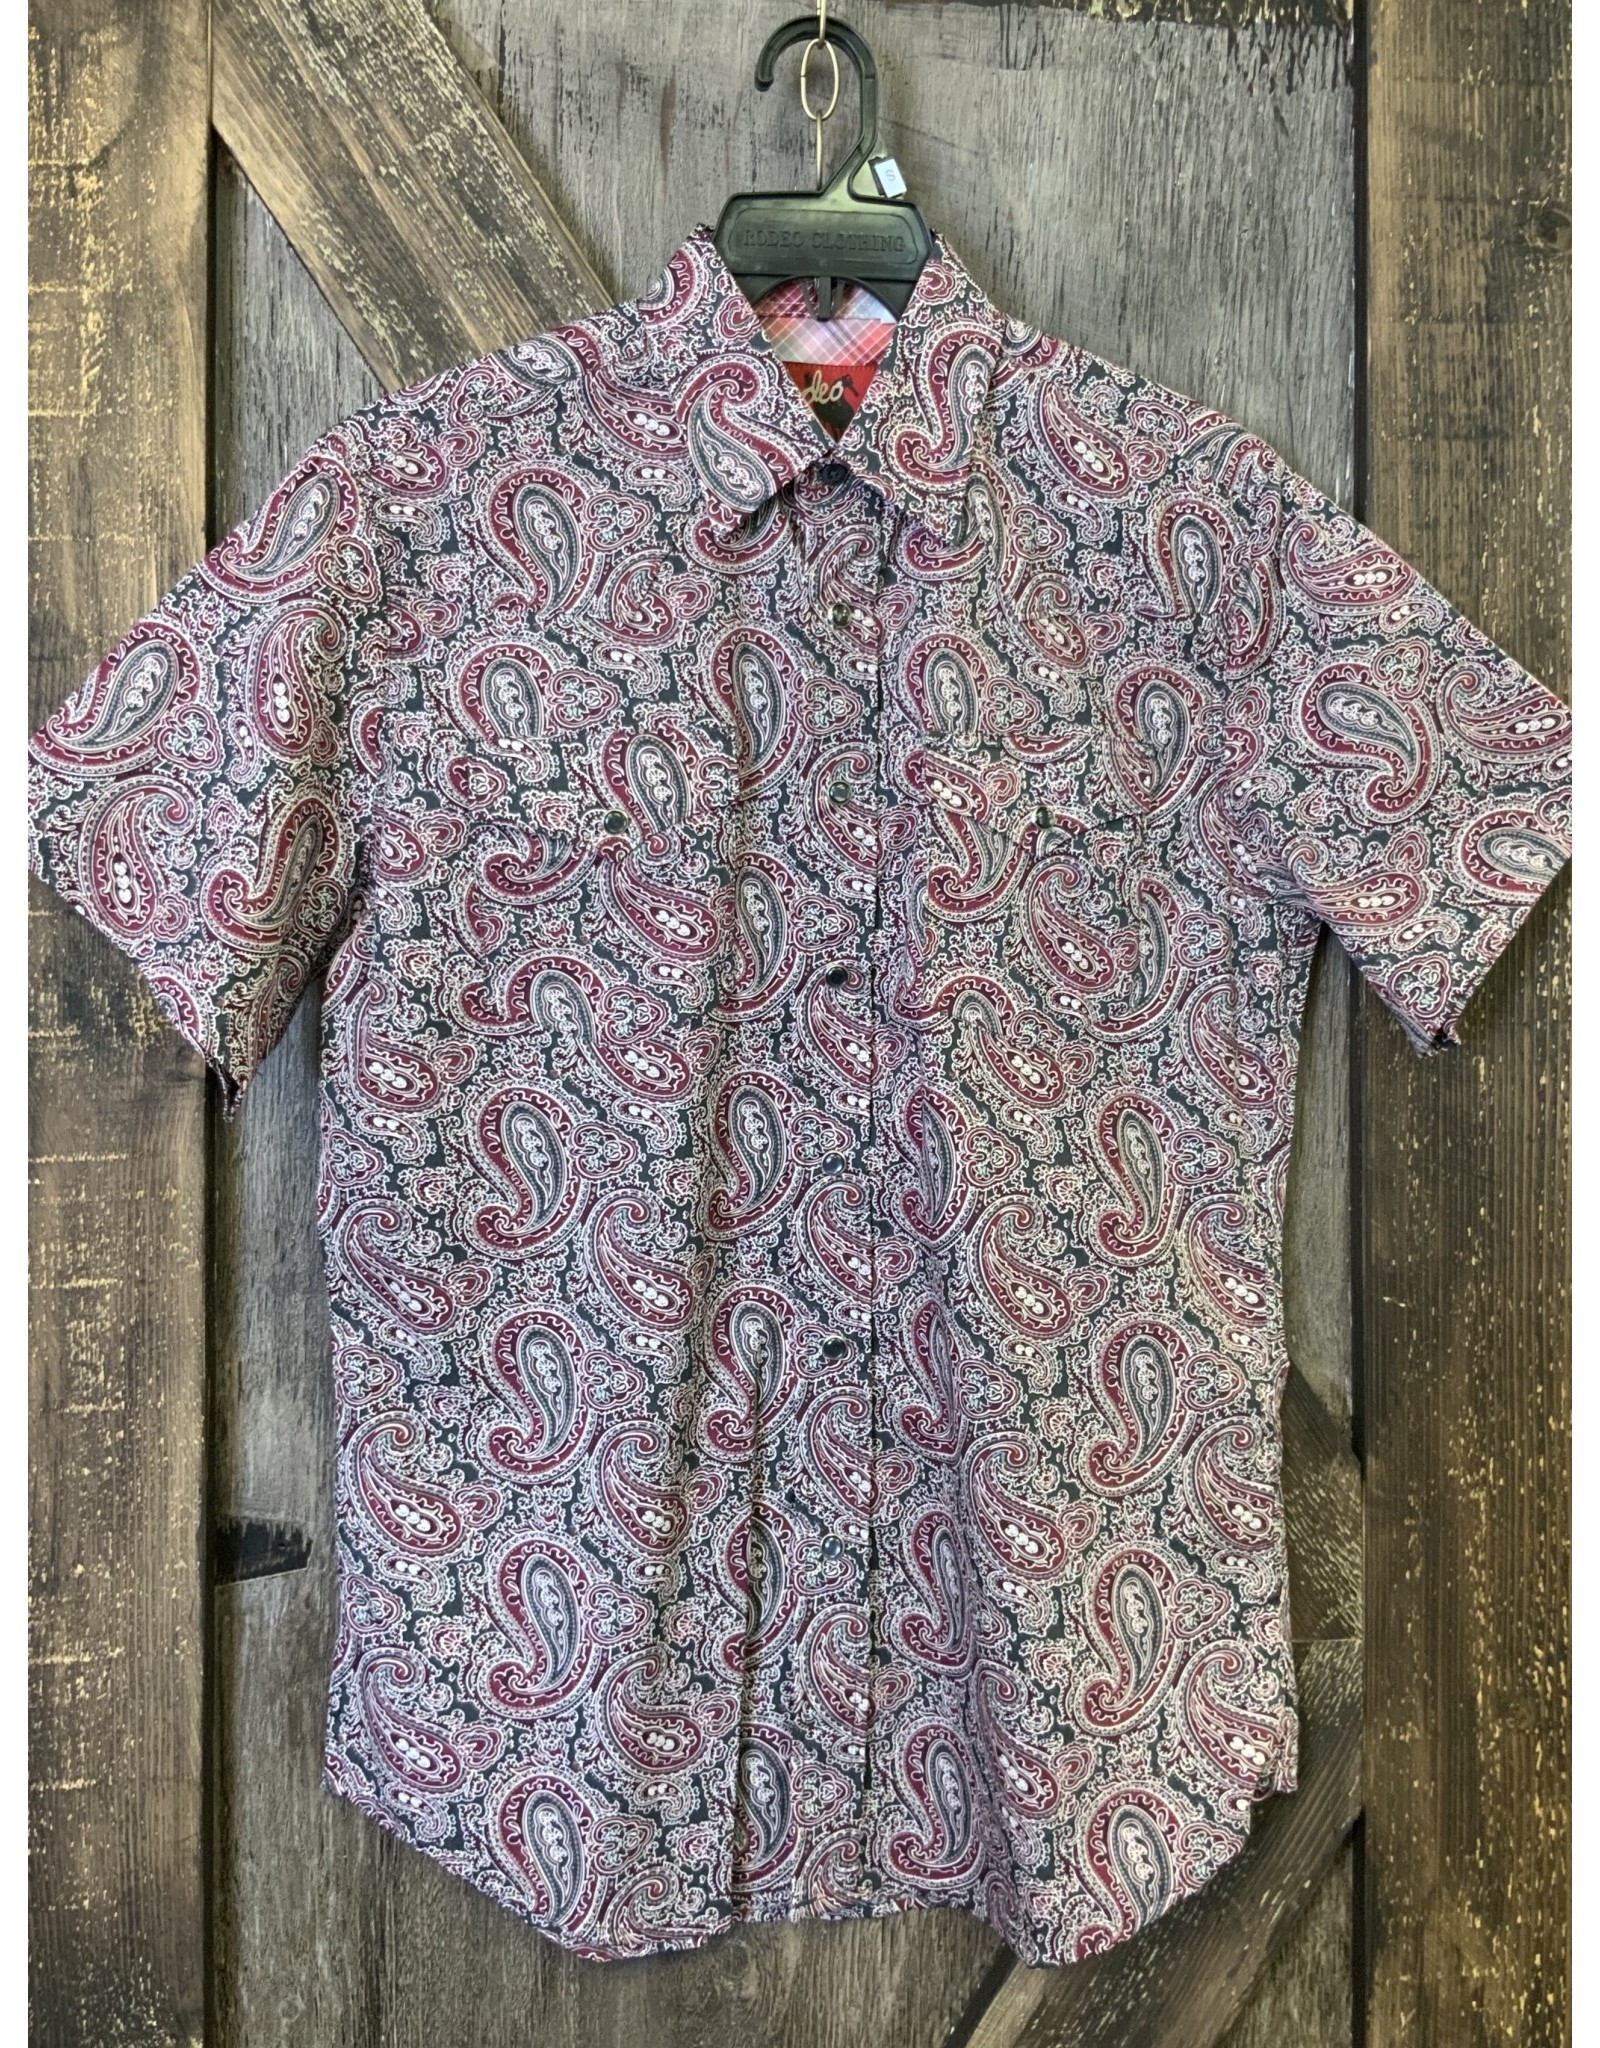 Rodeo Clothing Co. MEN'S S/S RODEO CLOTHING SHIRT